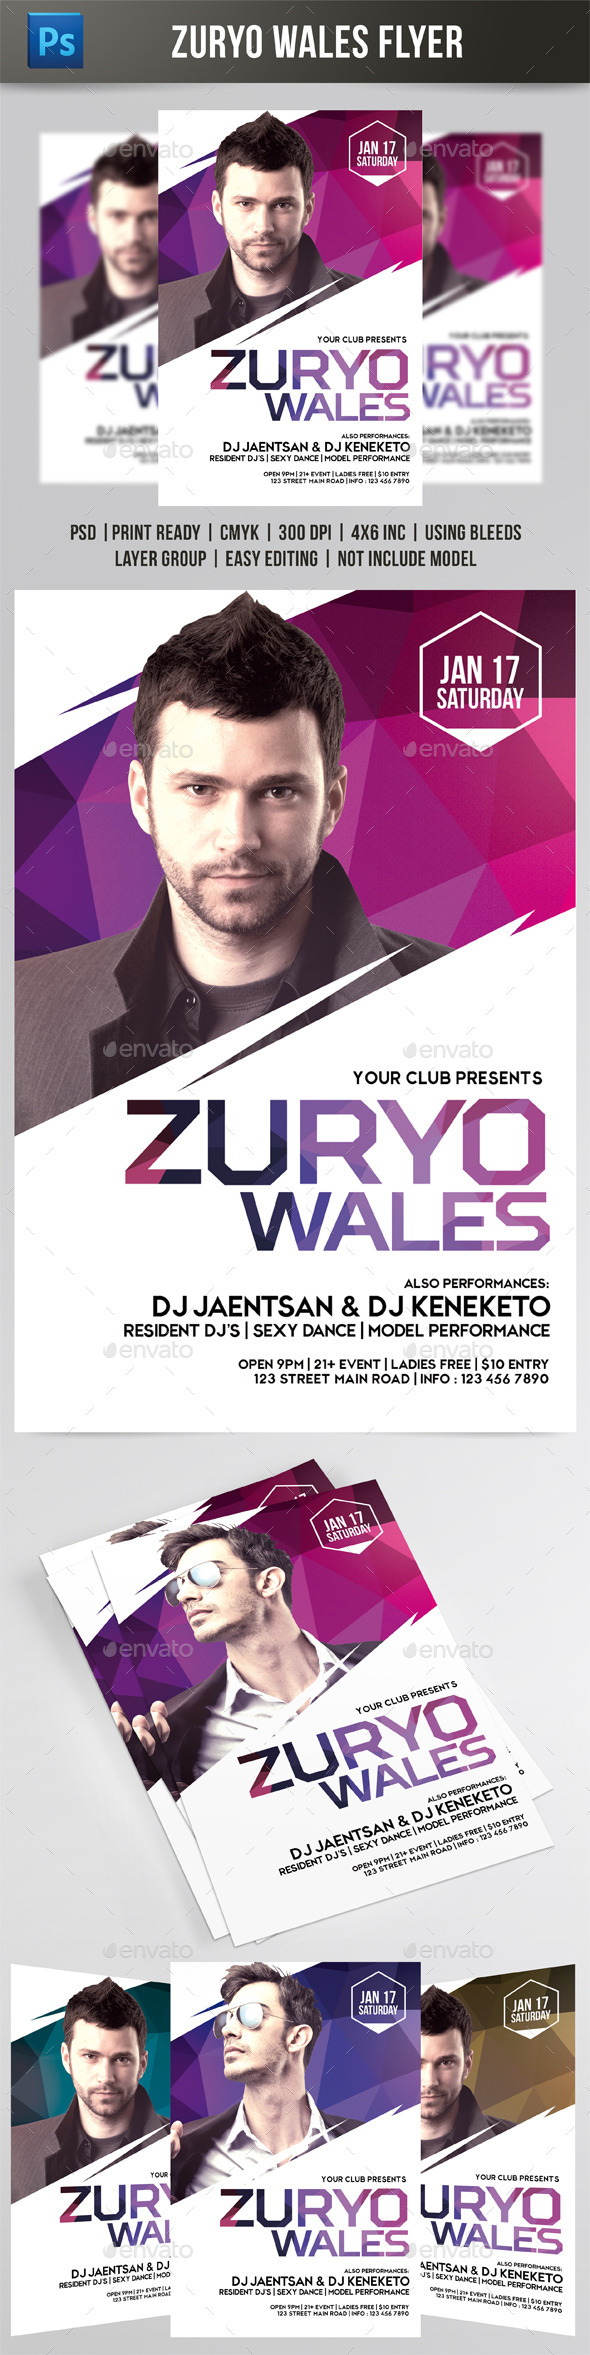 GraphicRiver Zuryo Wales Flyer 9546899